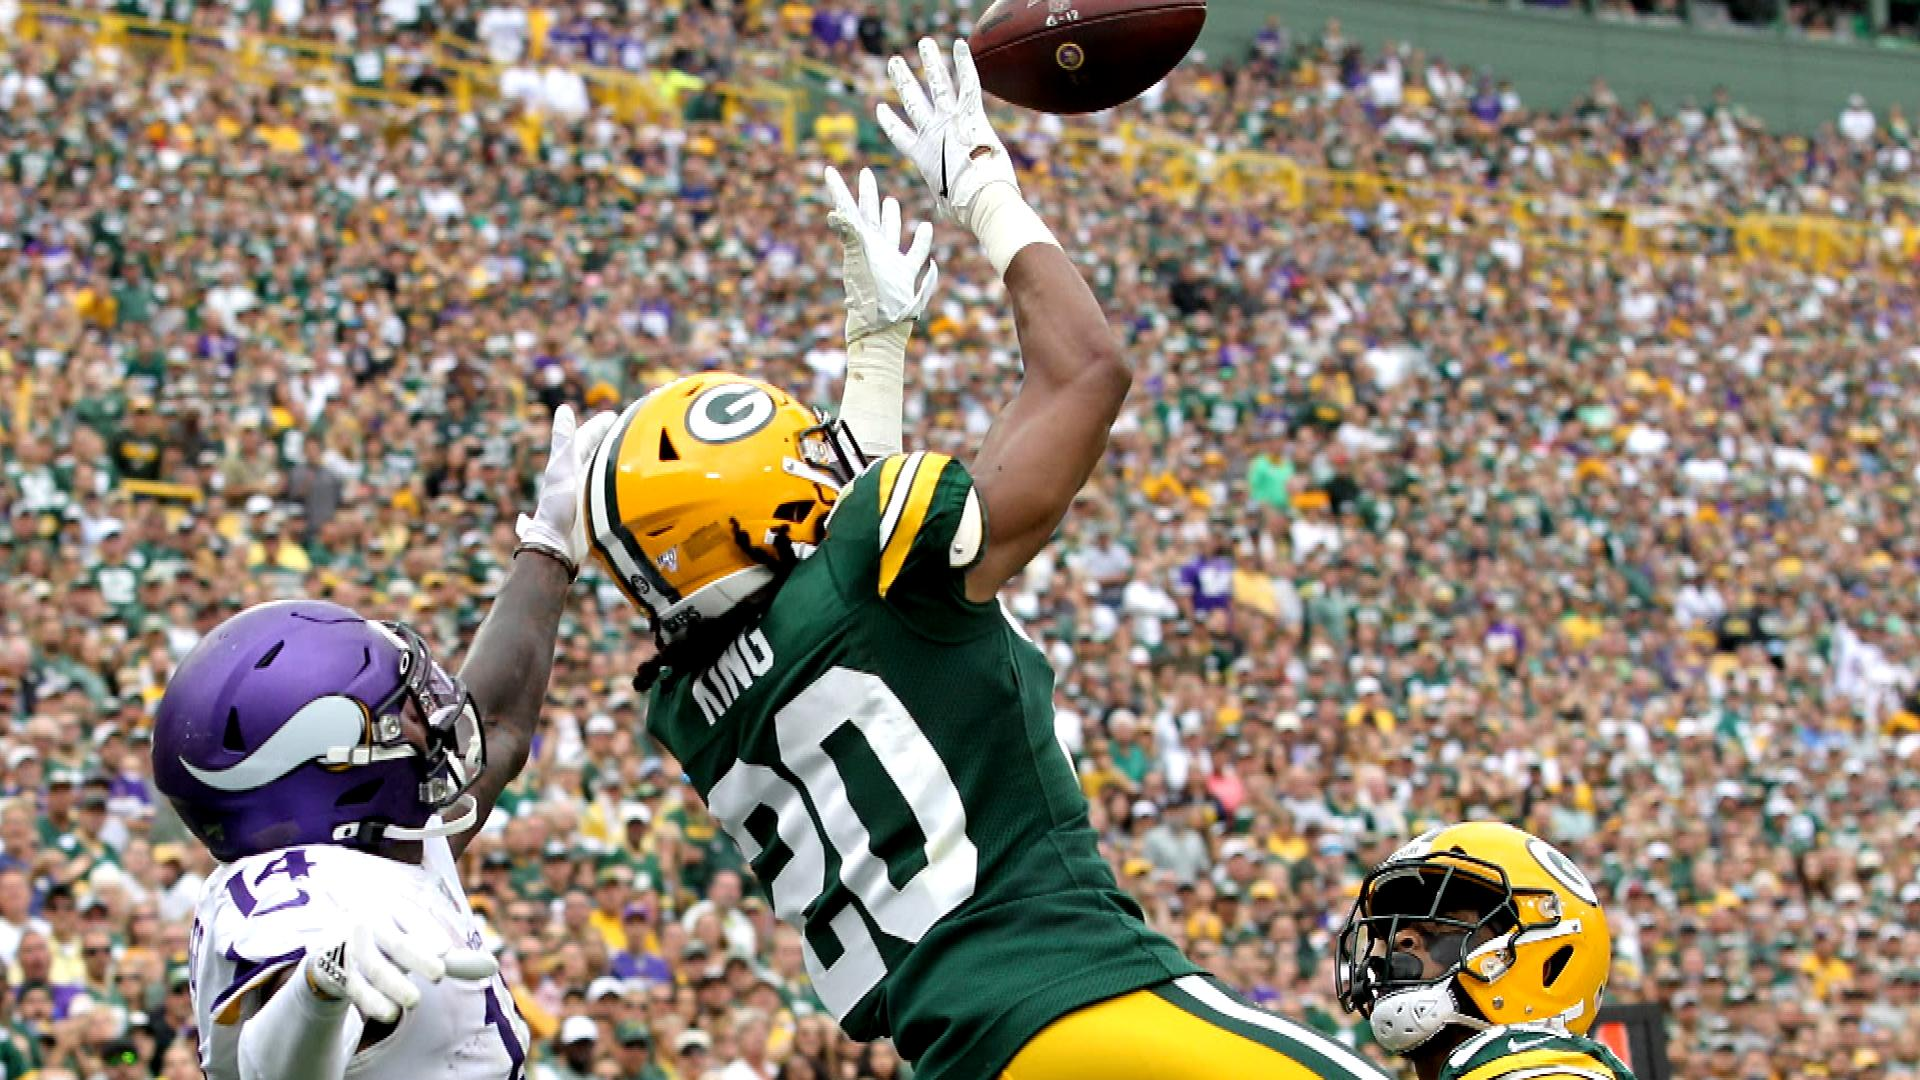 New pass interference replay review having unintended consequences